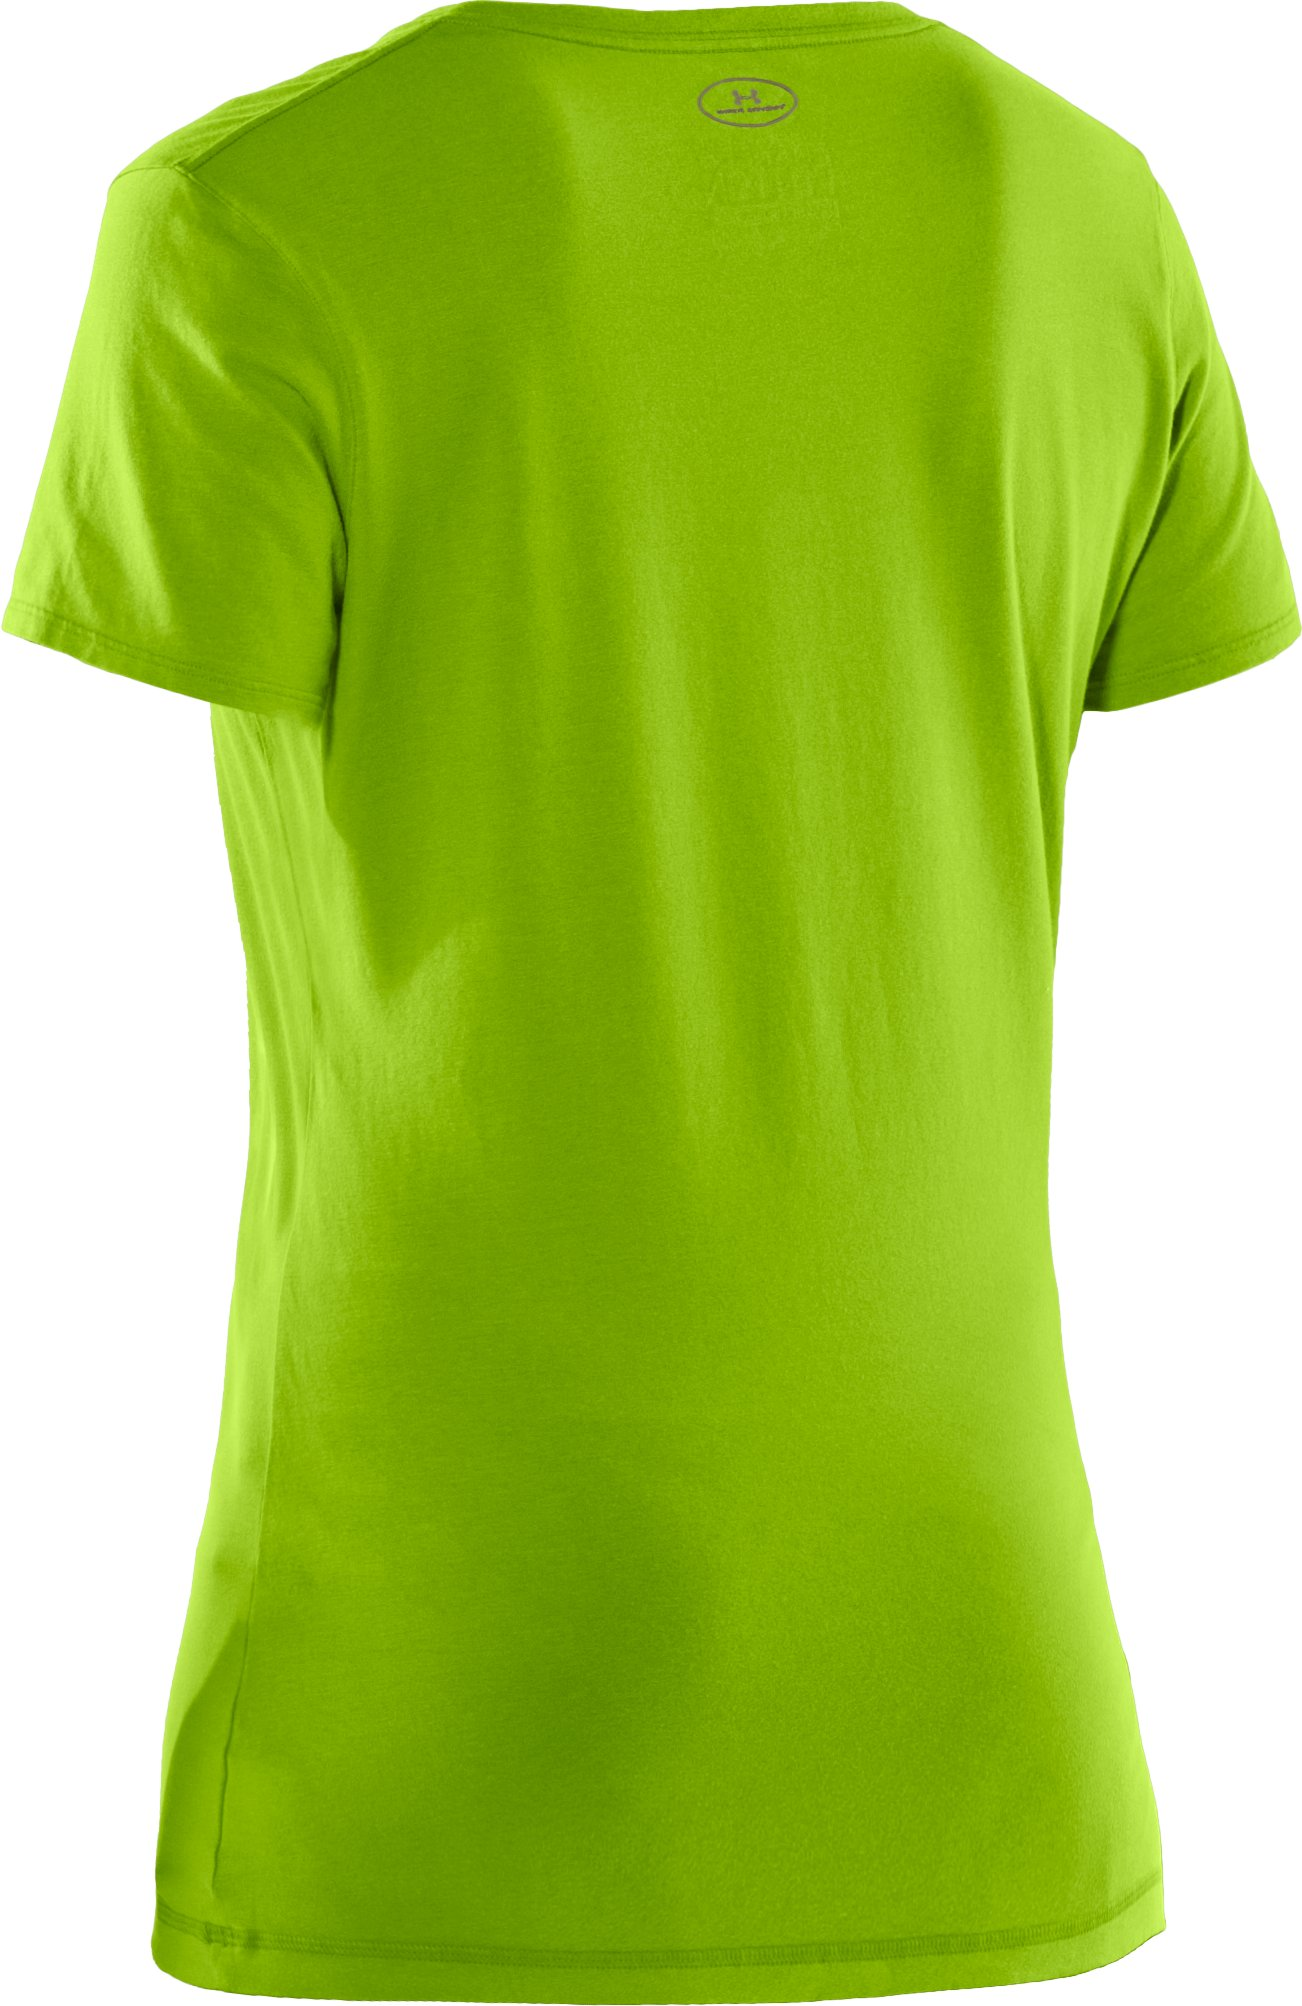 Women's Charged Cotton® Sassy Scoop T-Shirt, Fusion